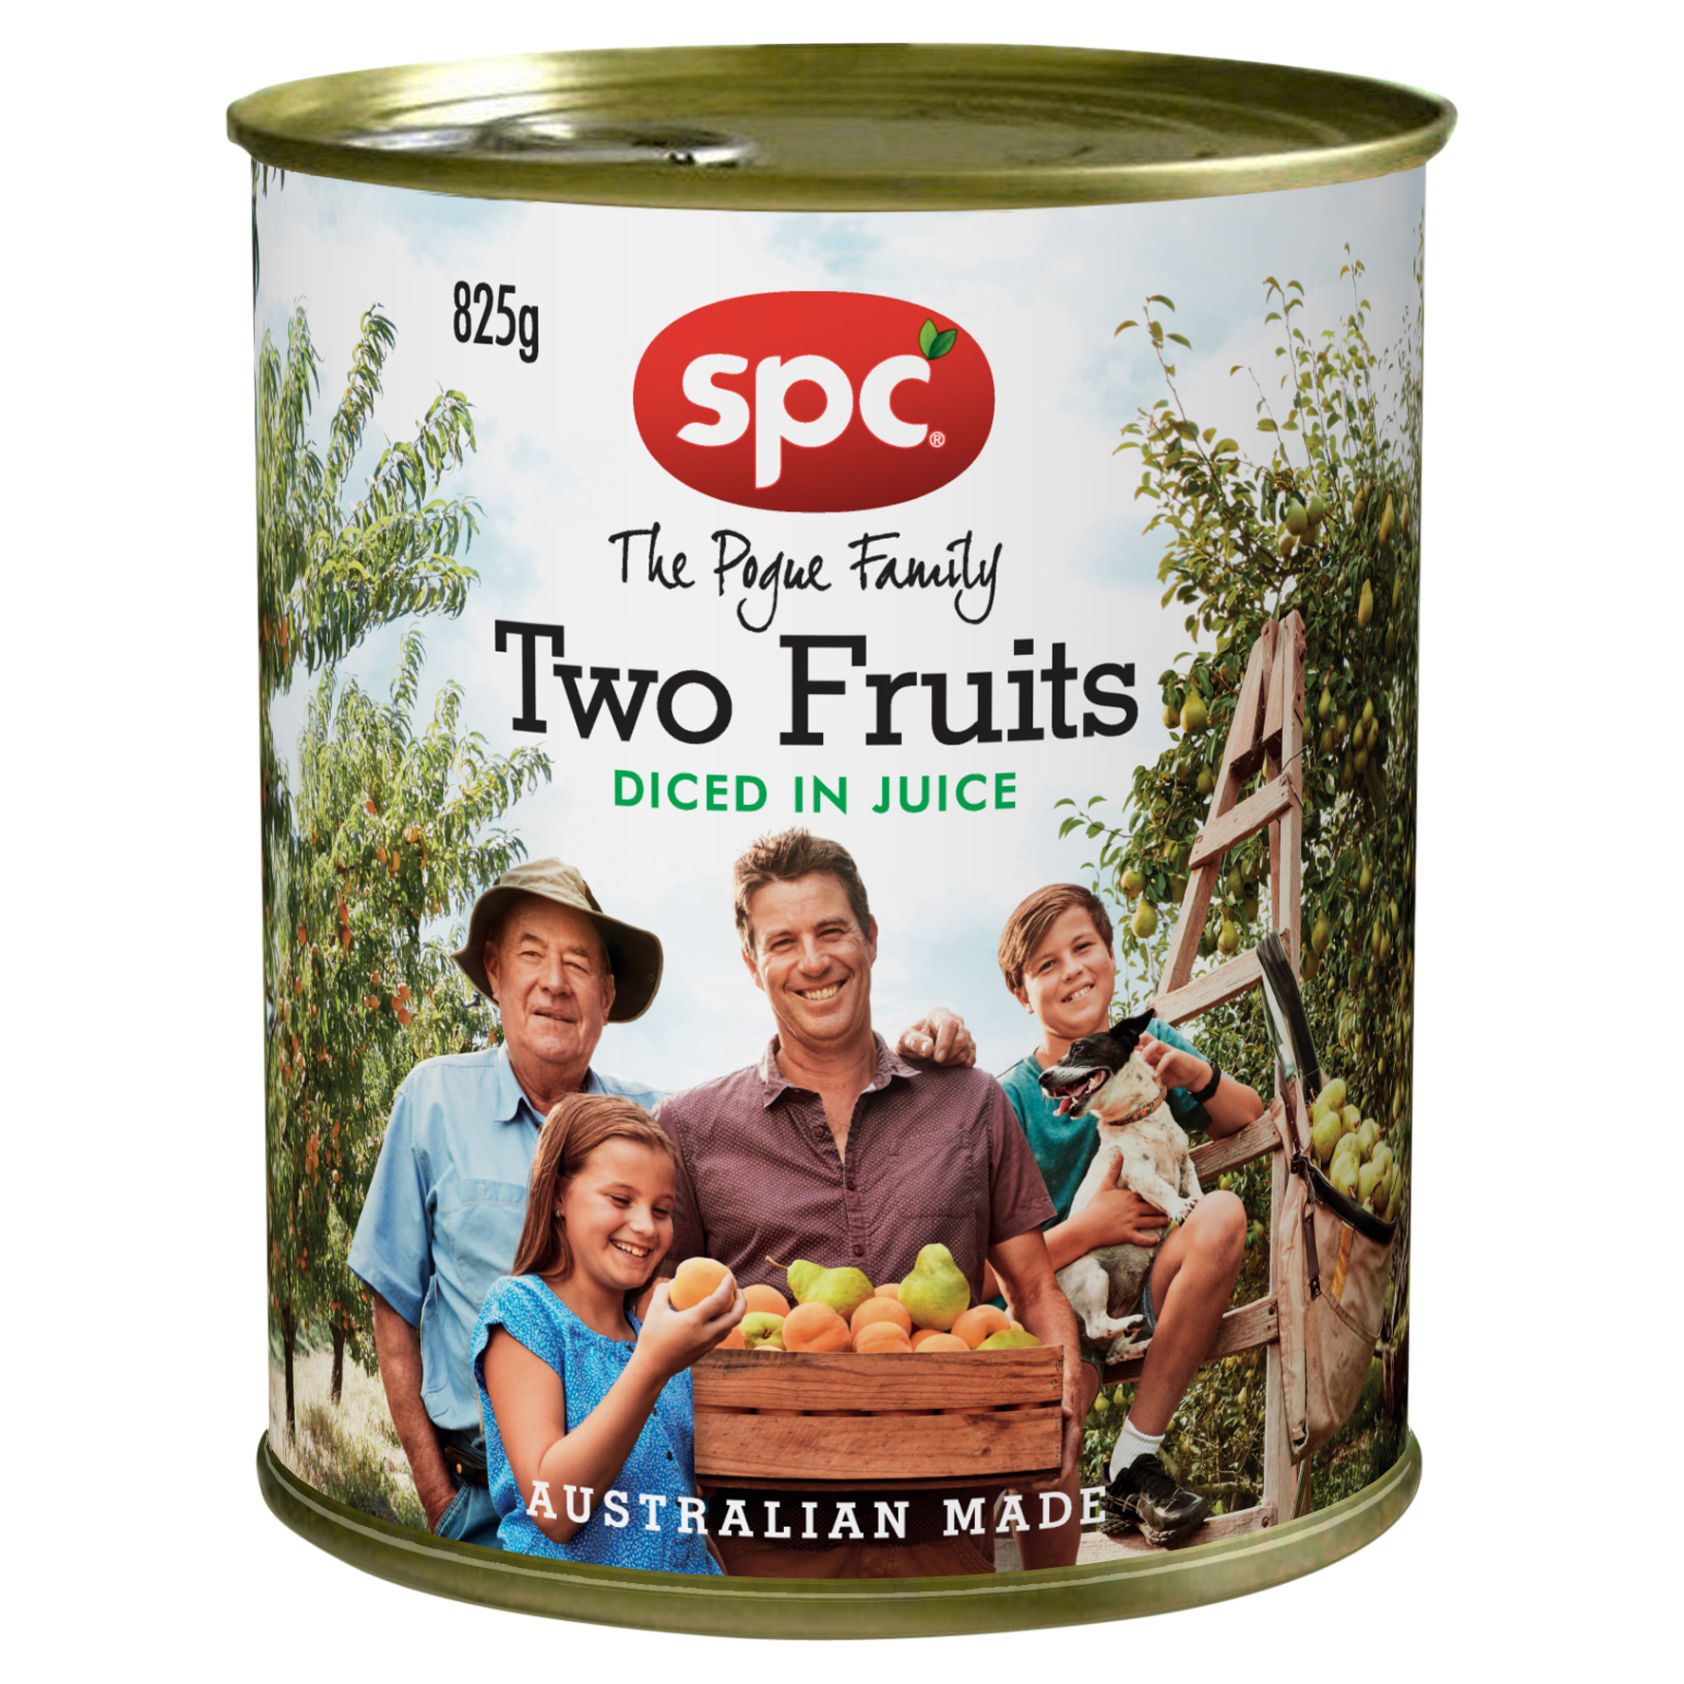 SPC Diced Two Fruits in Juice 825g